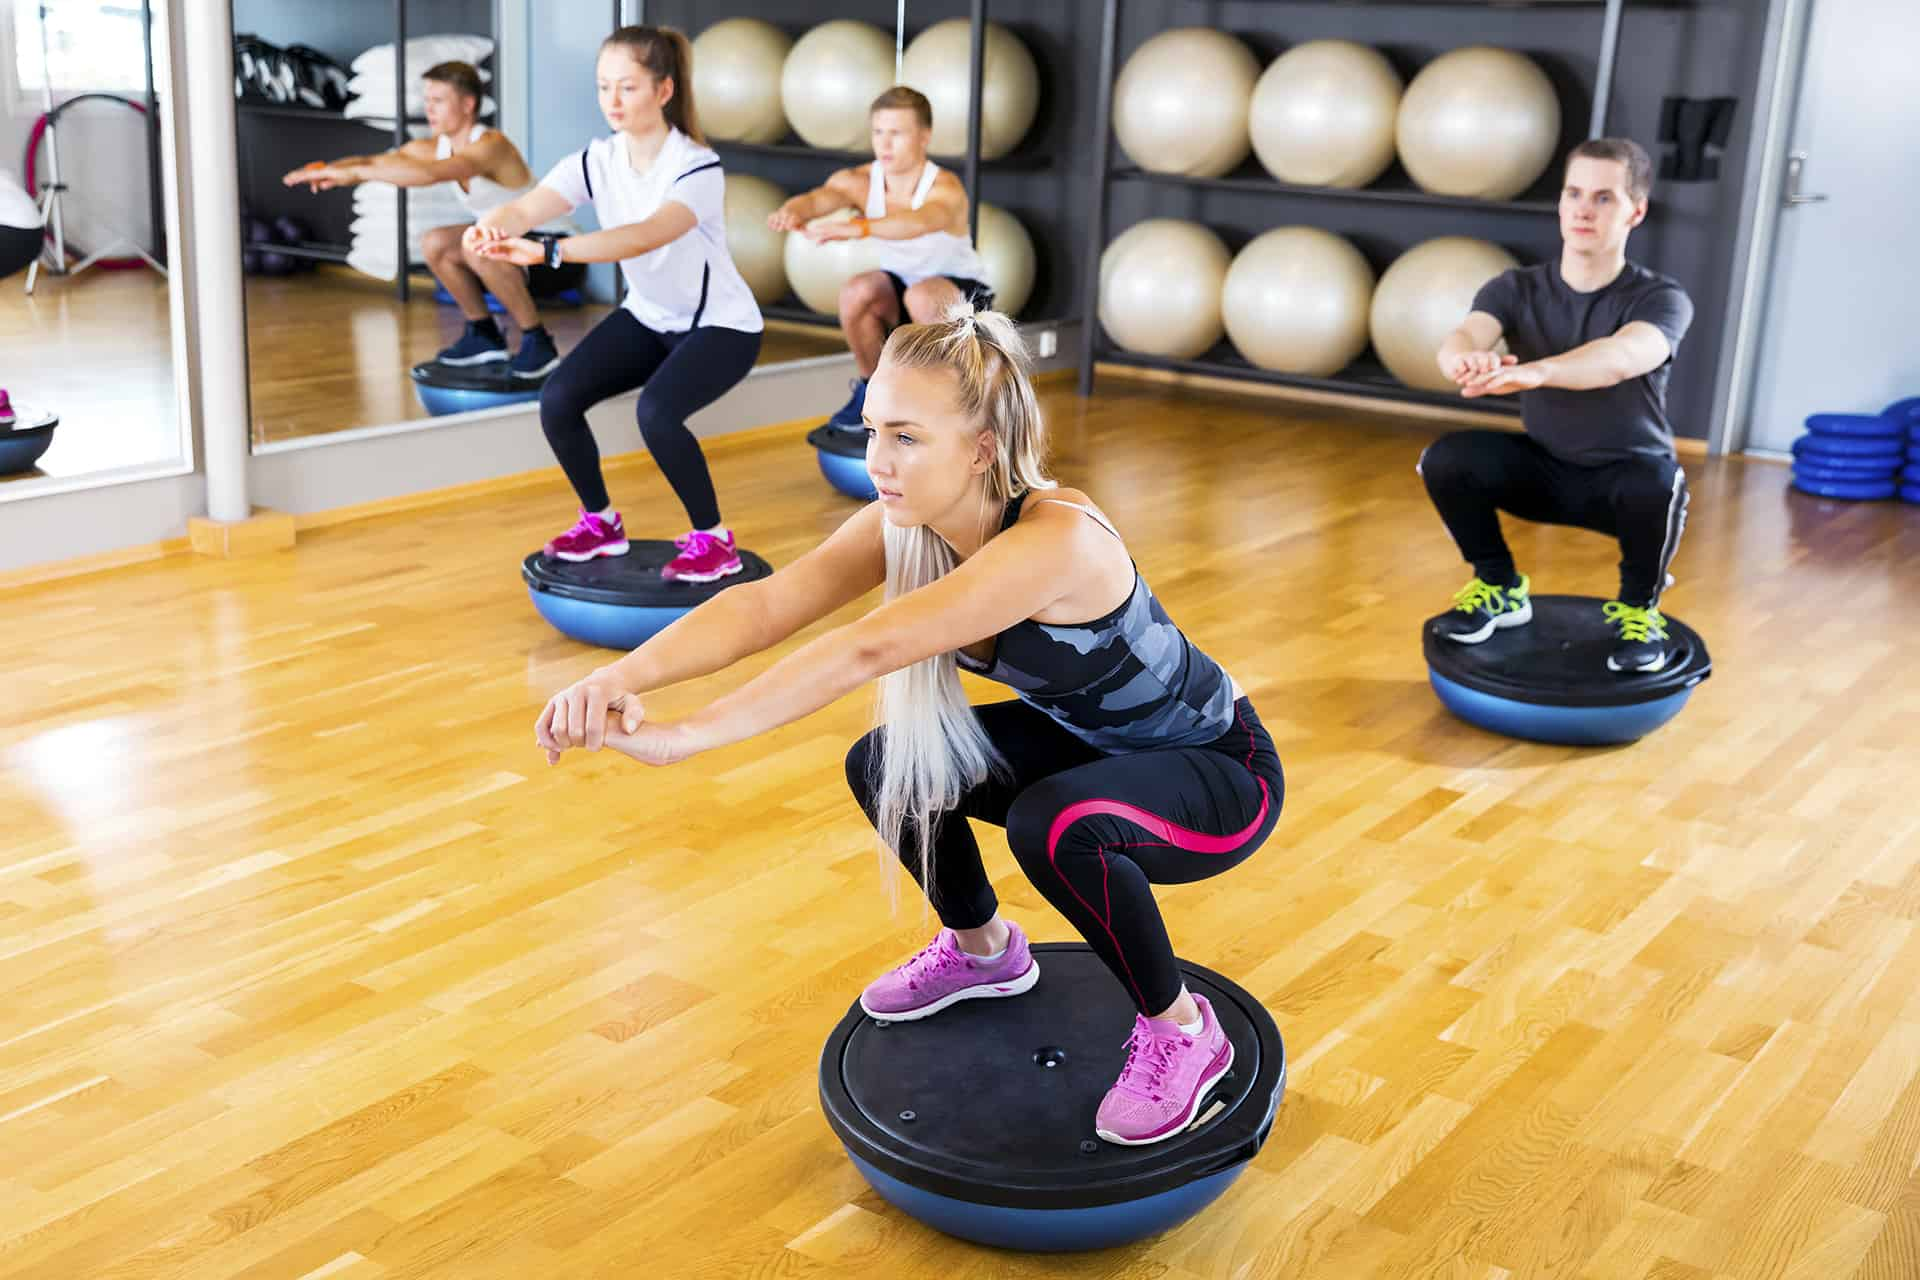 Focused group training squats on half ball at fitness gym